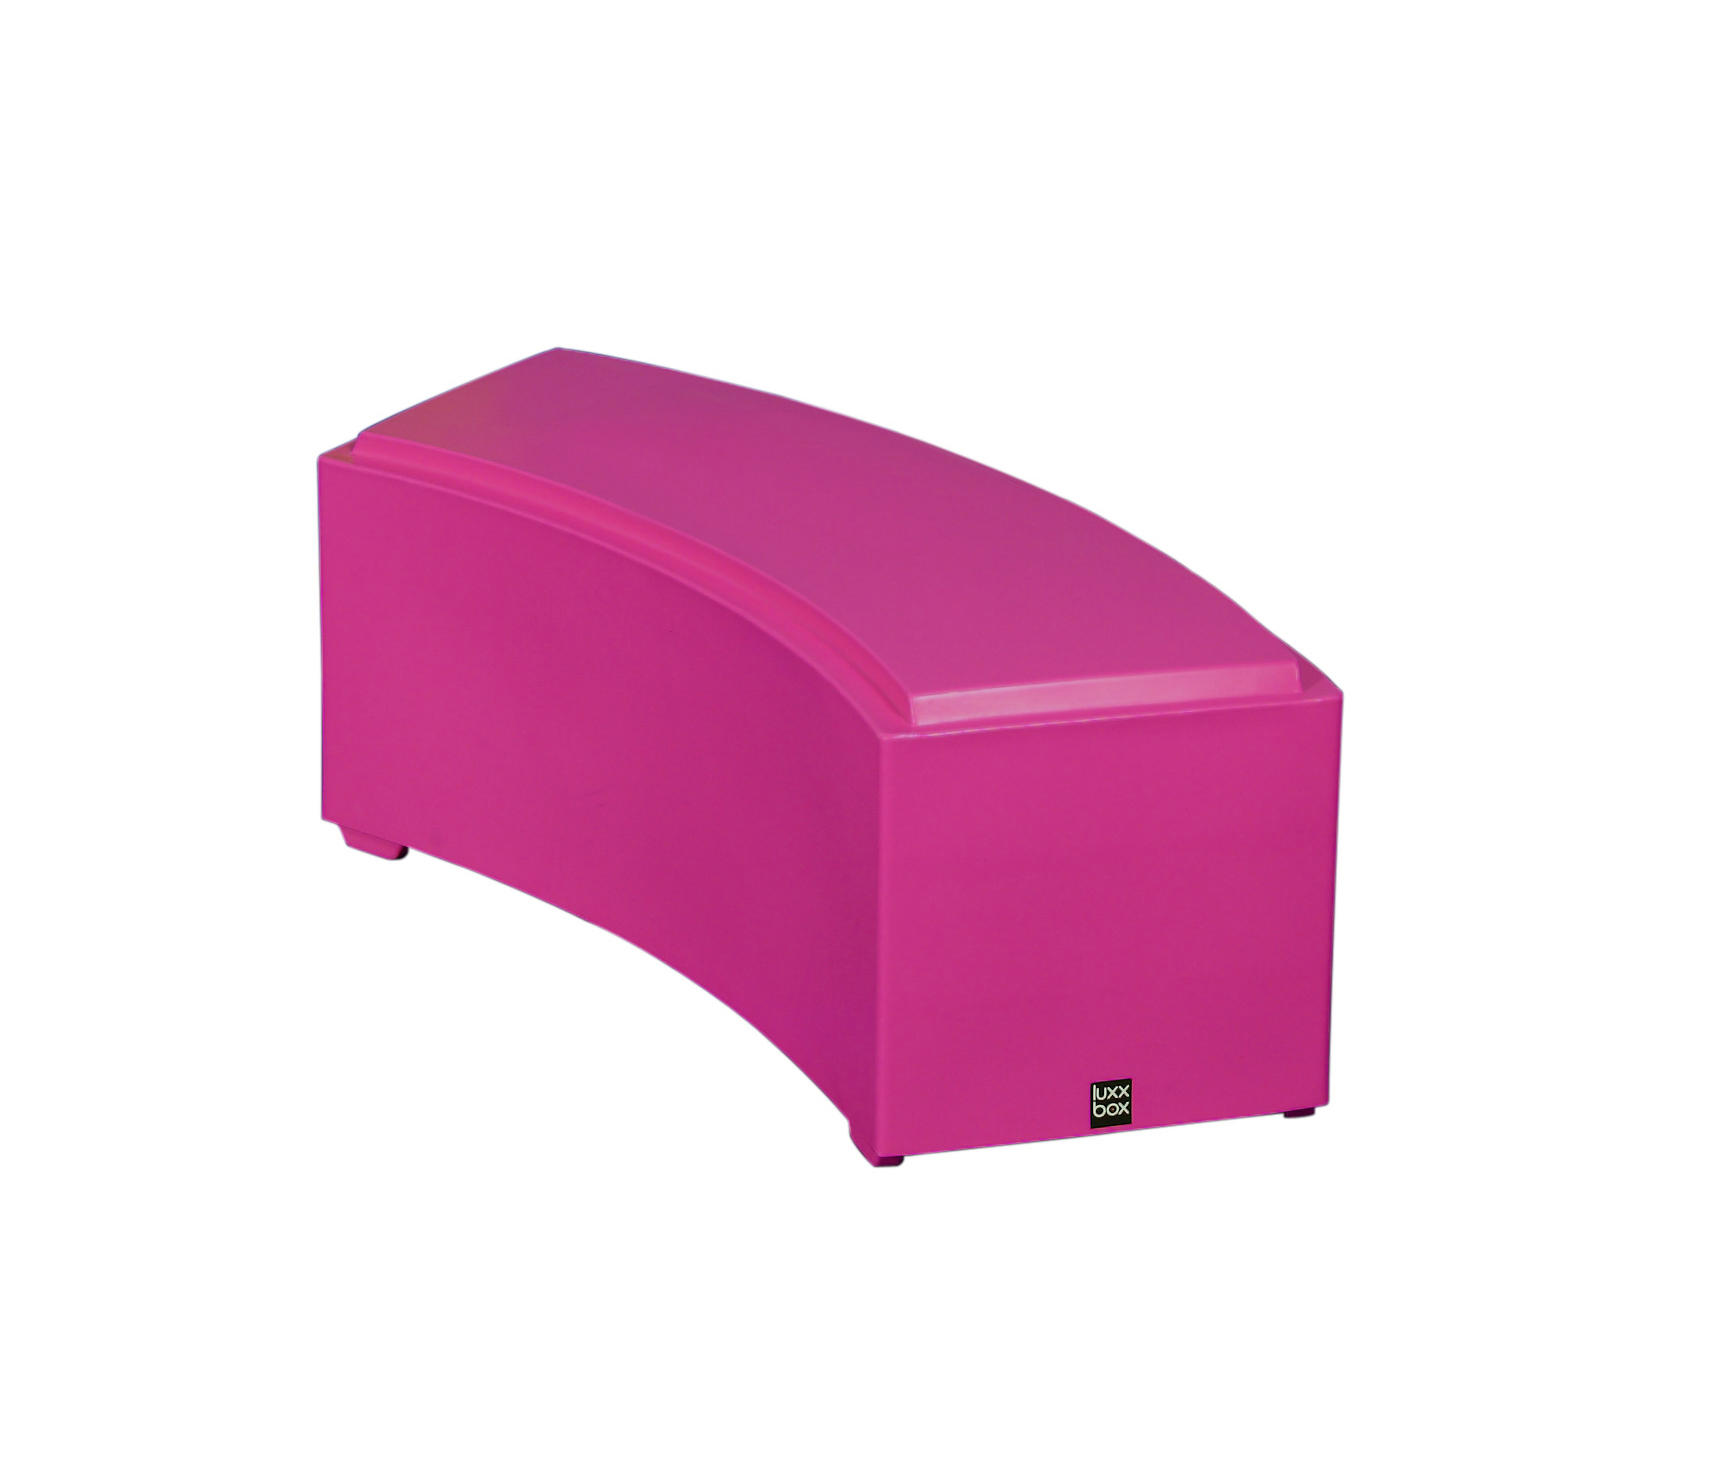 1eighth Bench Fairy Floss Benches From Luxxbox